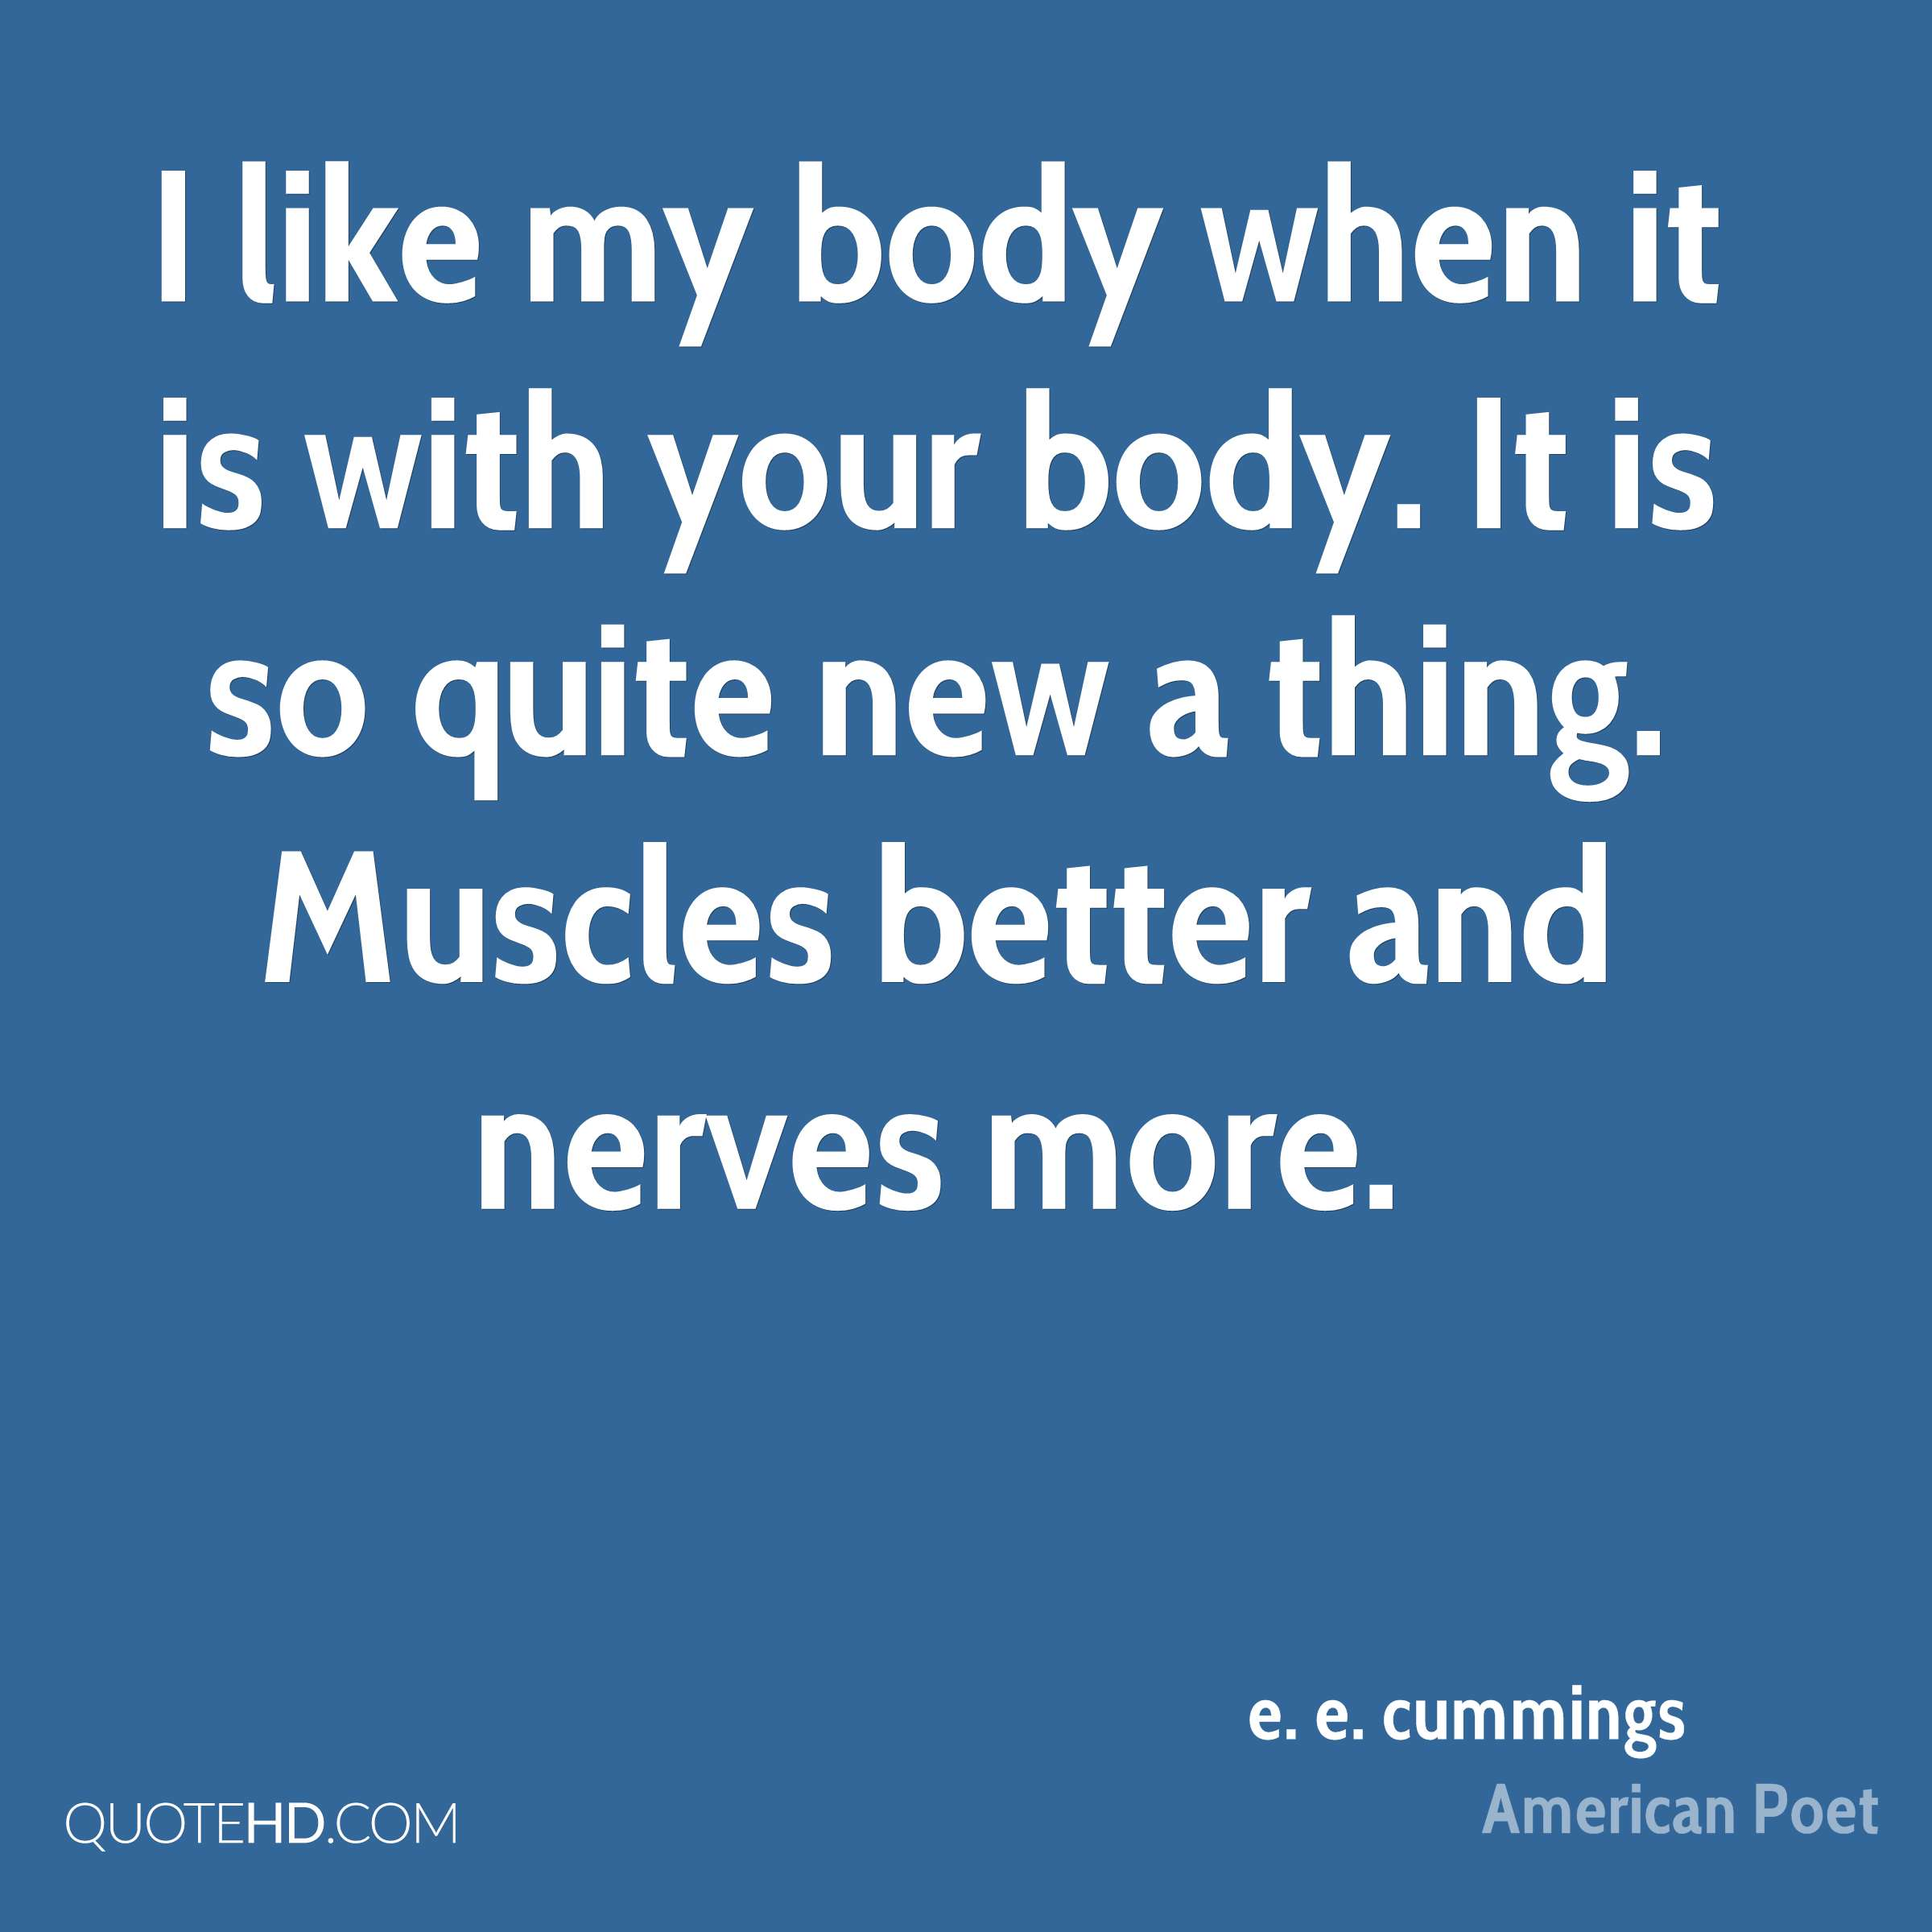 I like my body when it is with your body. It is so quite new a thing. Muscles better and nerves more.